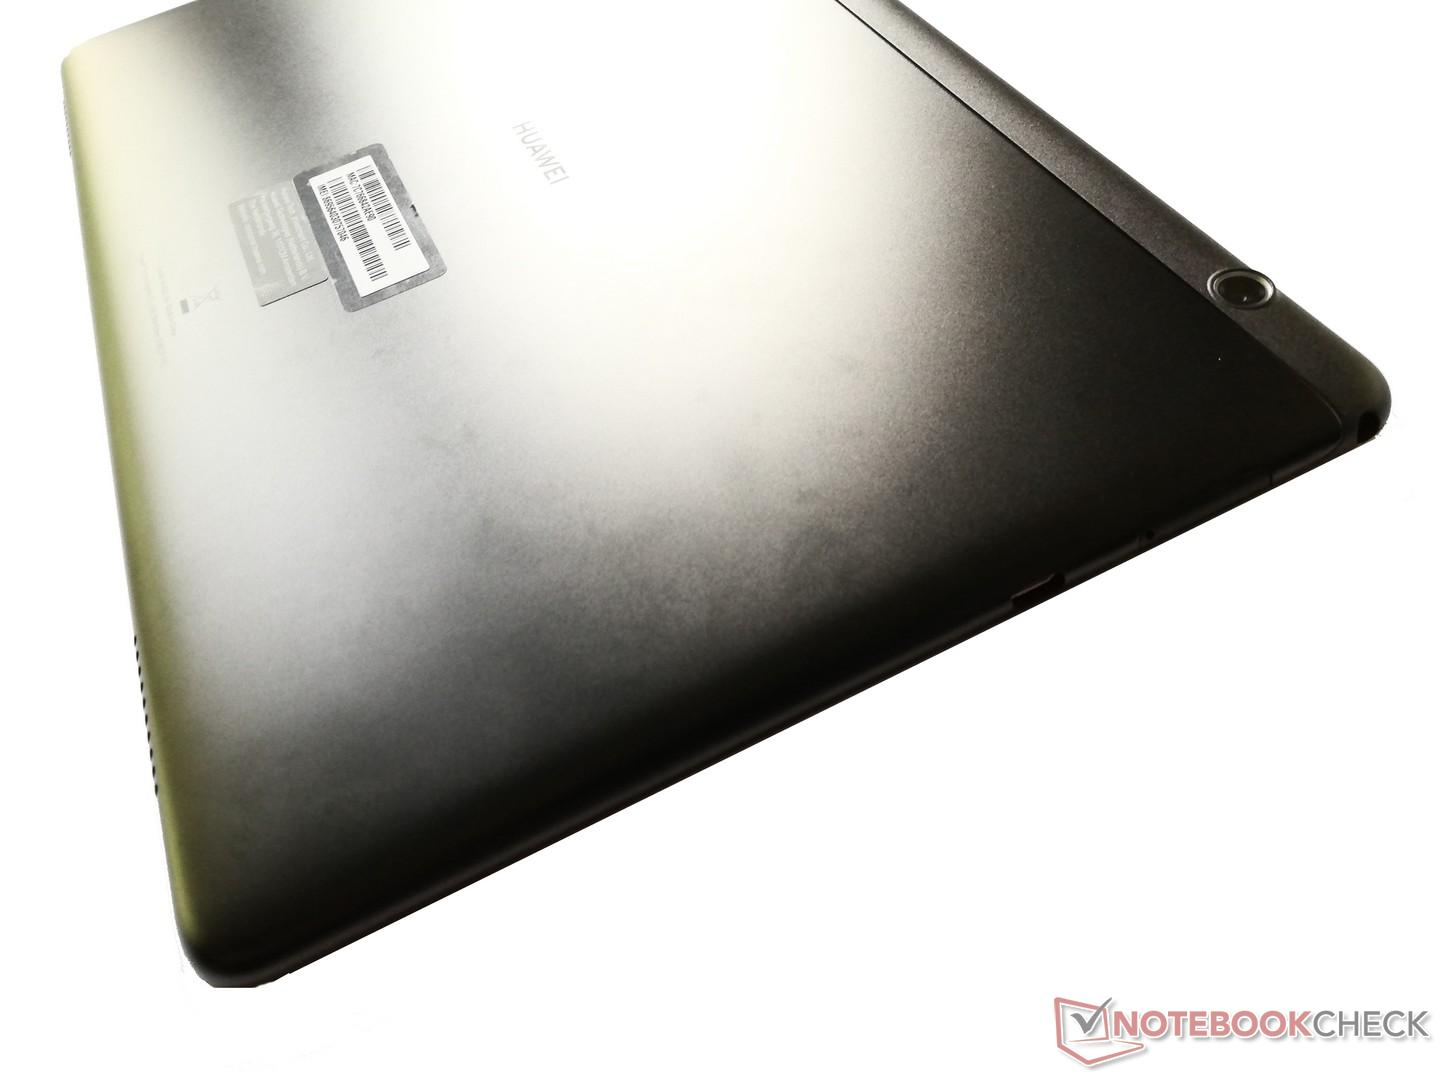 ef8527283ac0 Huawei MediaPad T5 (10.1-inch, LTE) Tablet Review - NotebookCheck ...